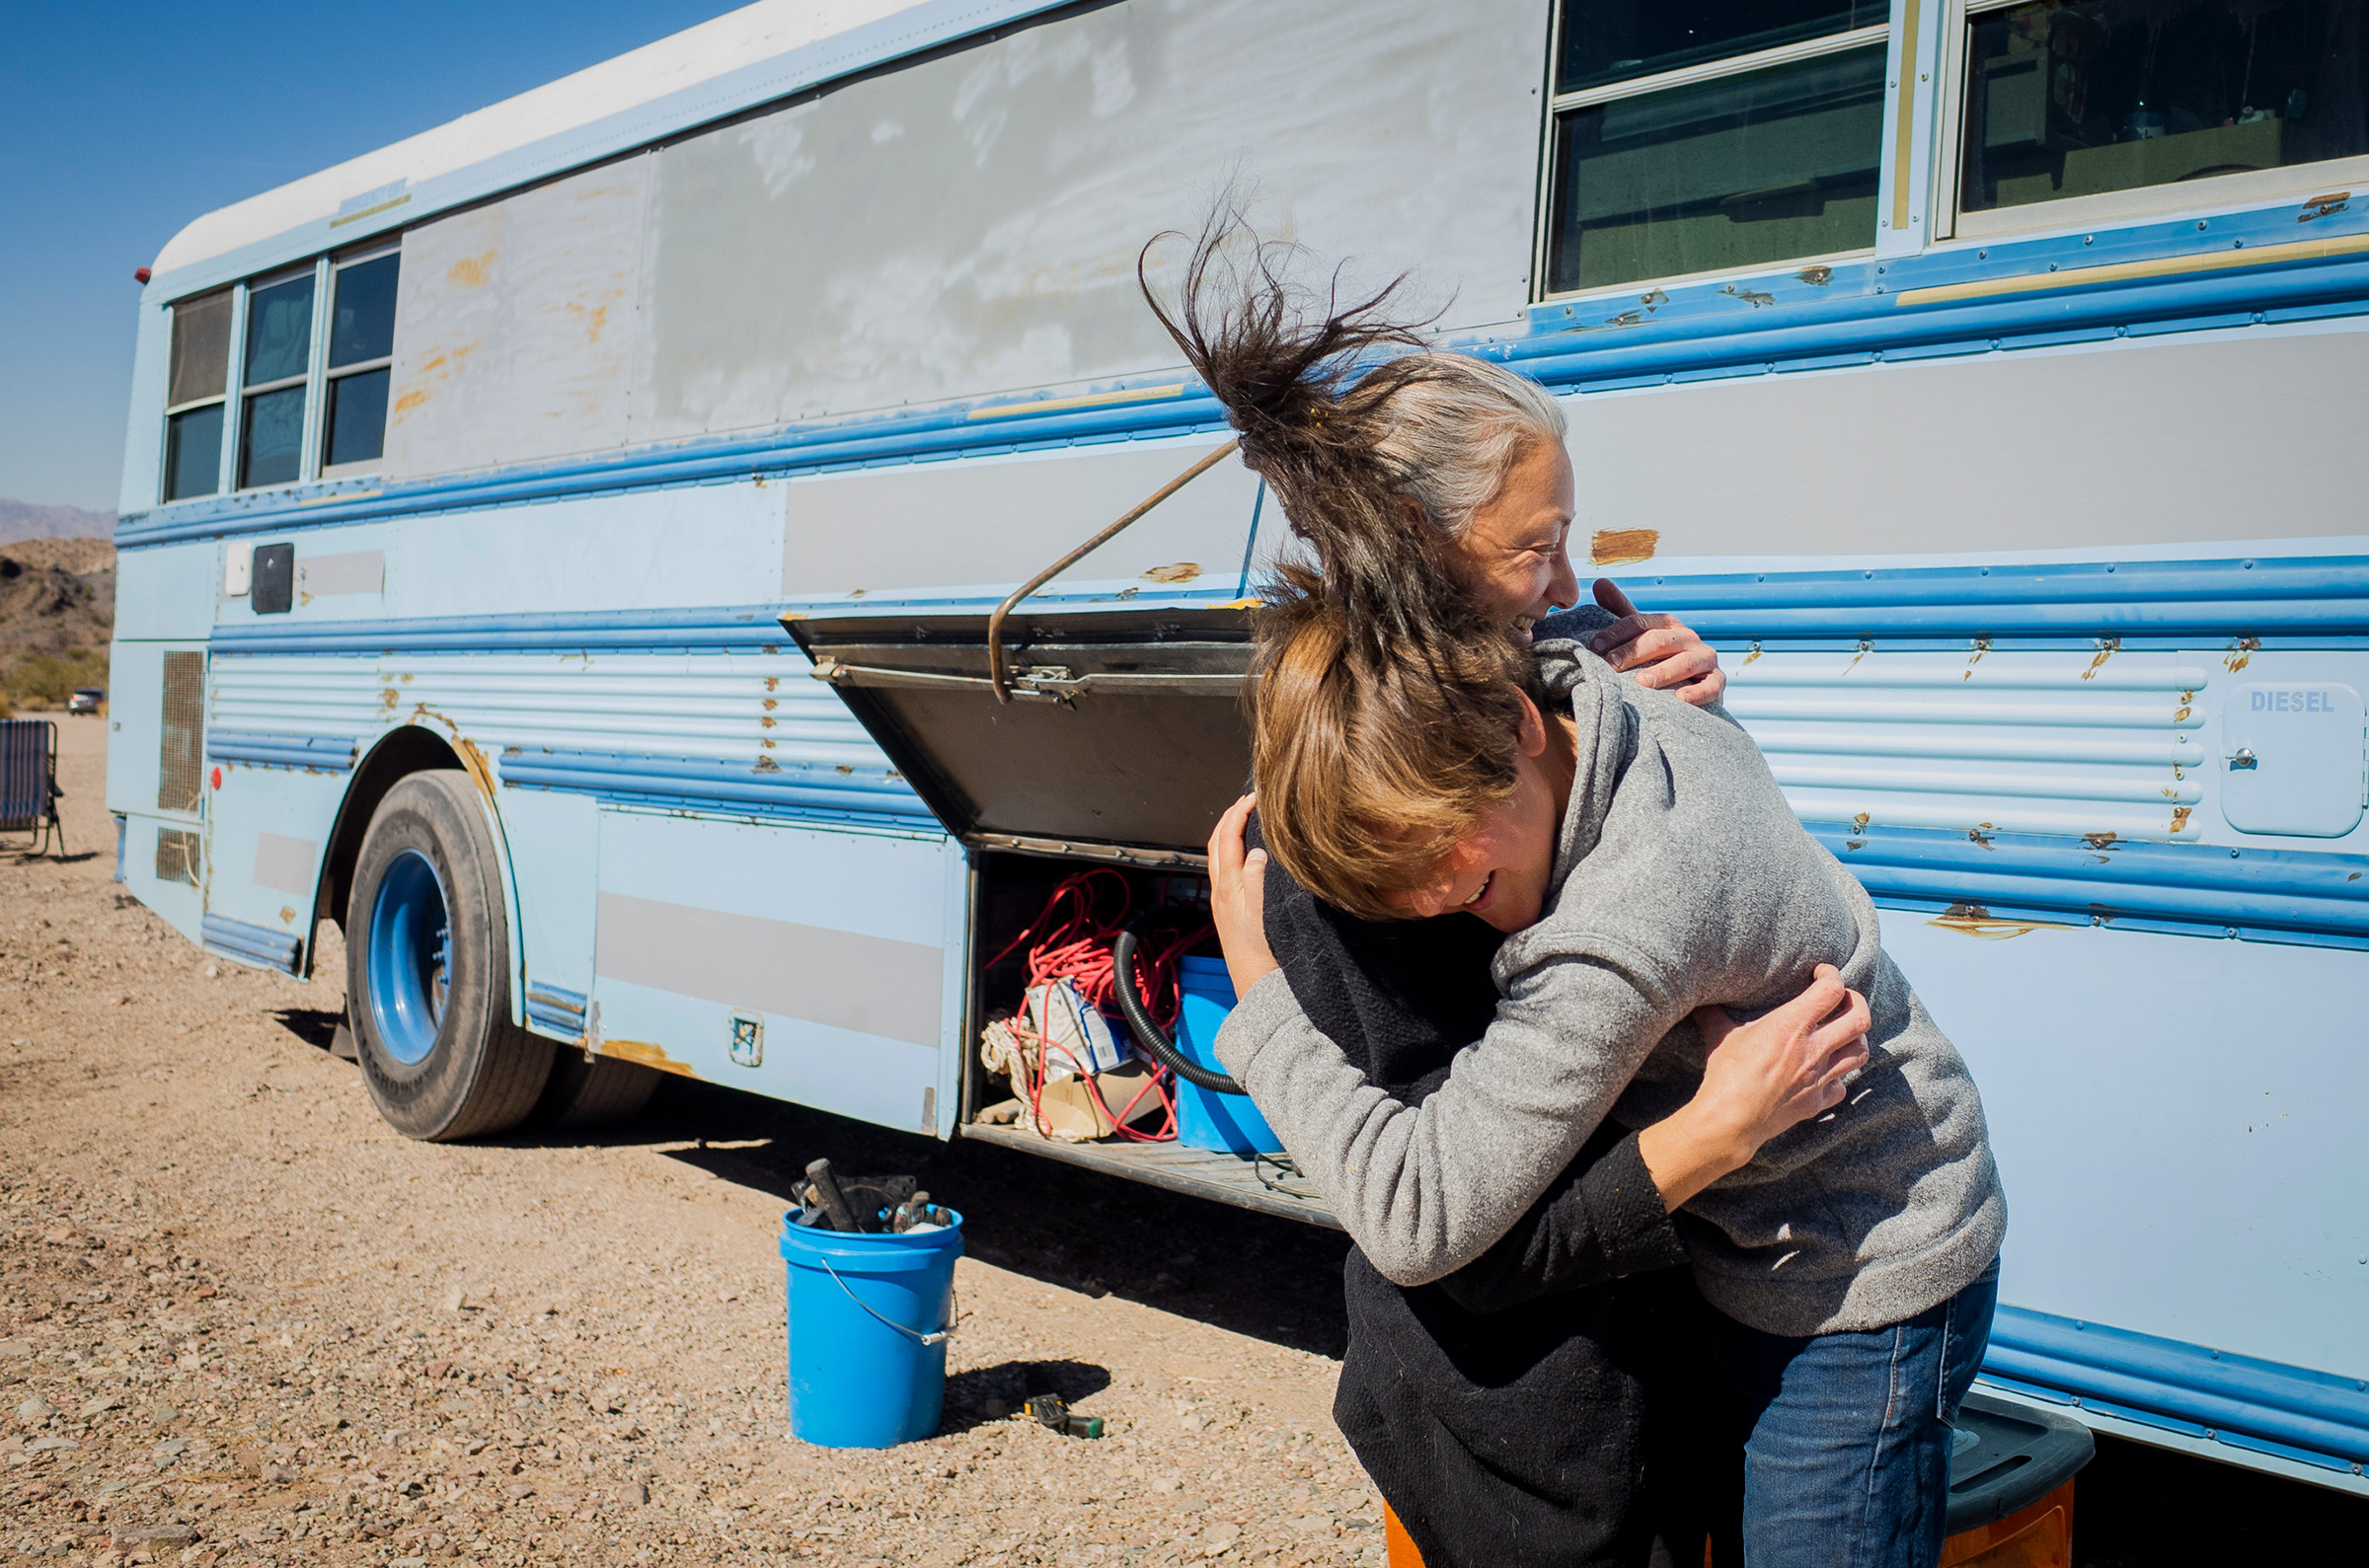 """Paula and Max embrace after working on construction projects for the bus on Feb. 20. They're careful to clean up after themselves after renovations. Paula says that, in her experience, people living out of skoolies or vans are usually the most respectful towards the land itself. """"The people who stay and do full time living, they would like to keep the privilege,"""" she explains. """"[We're] usually the ones that go out and clean up after all of the people that leave stuff behind."""""""